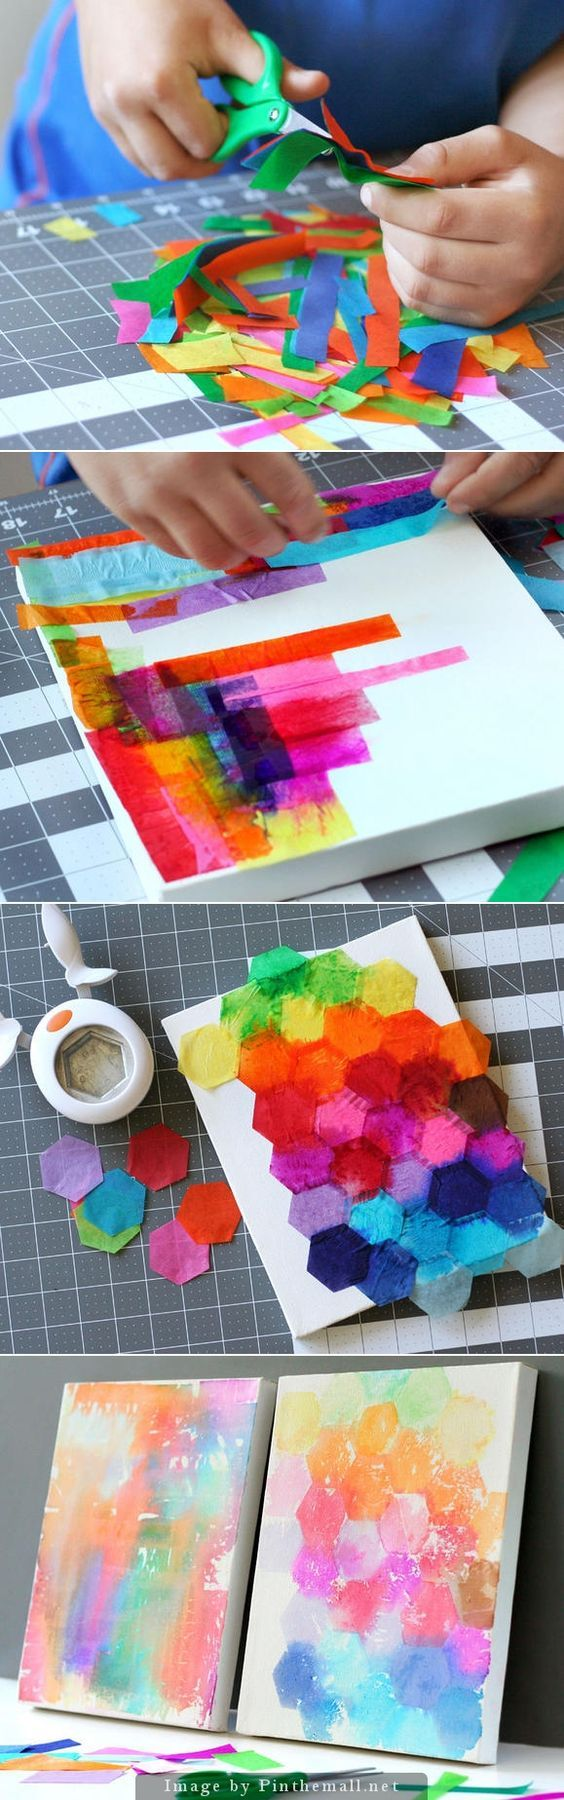 Tissue Paper Craft Ideas For Kids Part - 37: 20 Easy DIY Tissue Paper Crafts